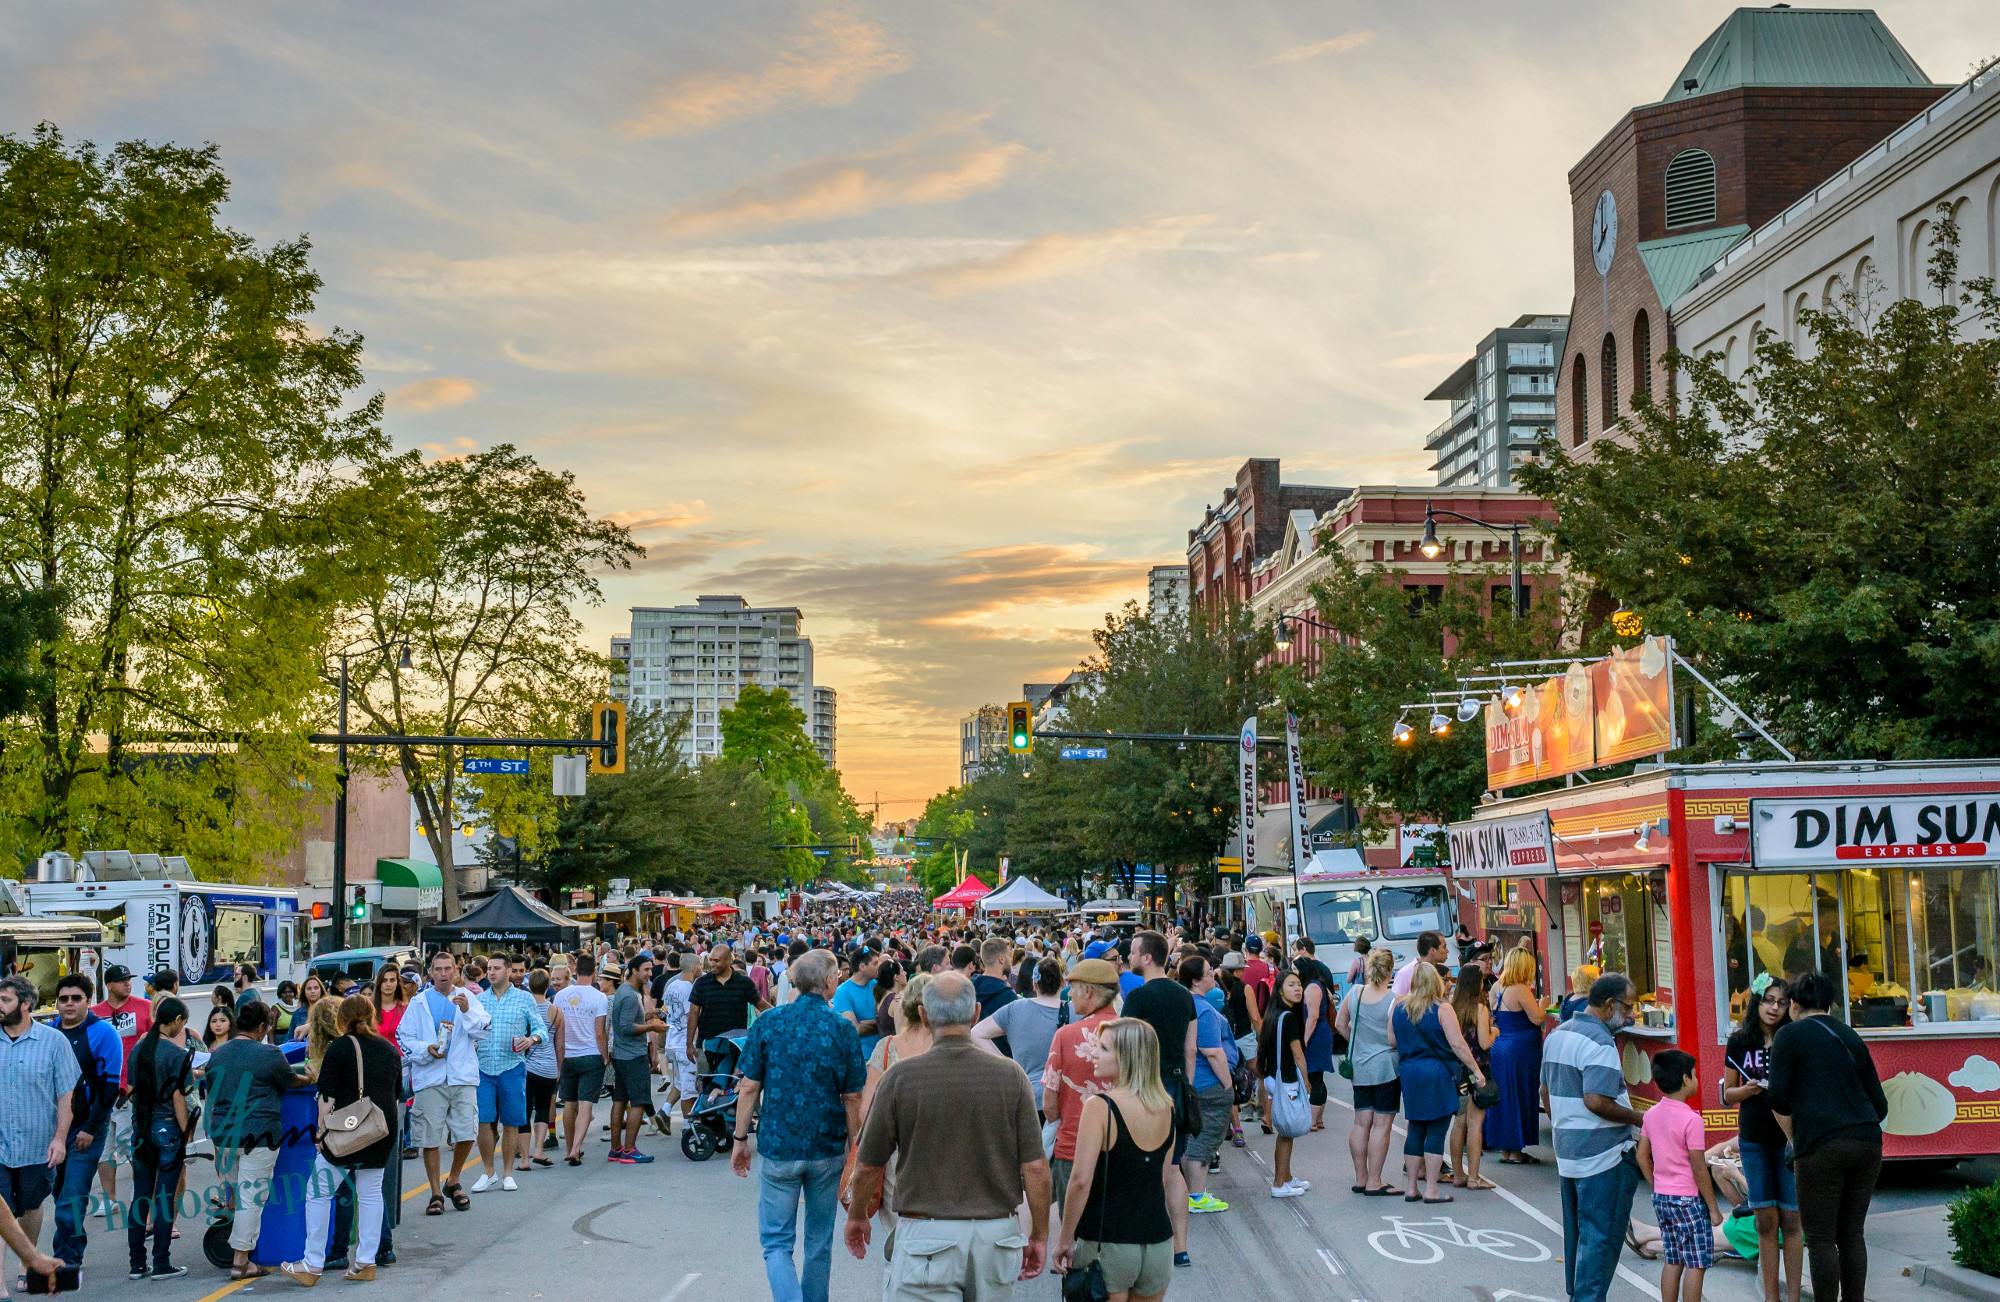 New westminster food truck festival 2016